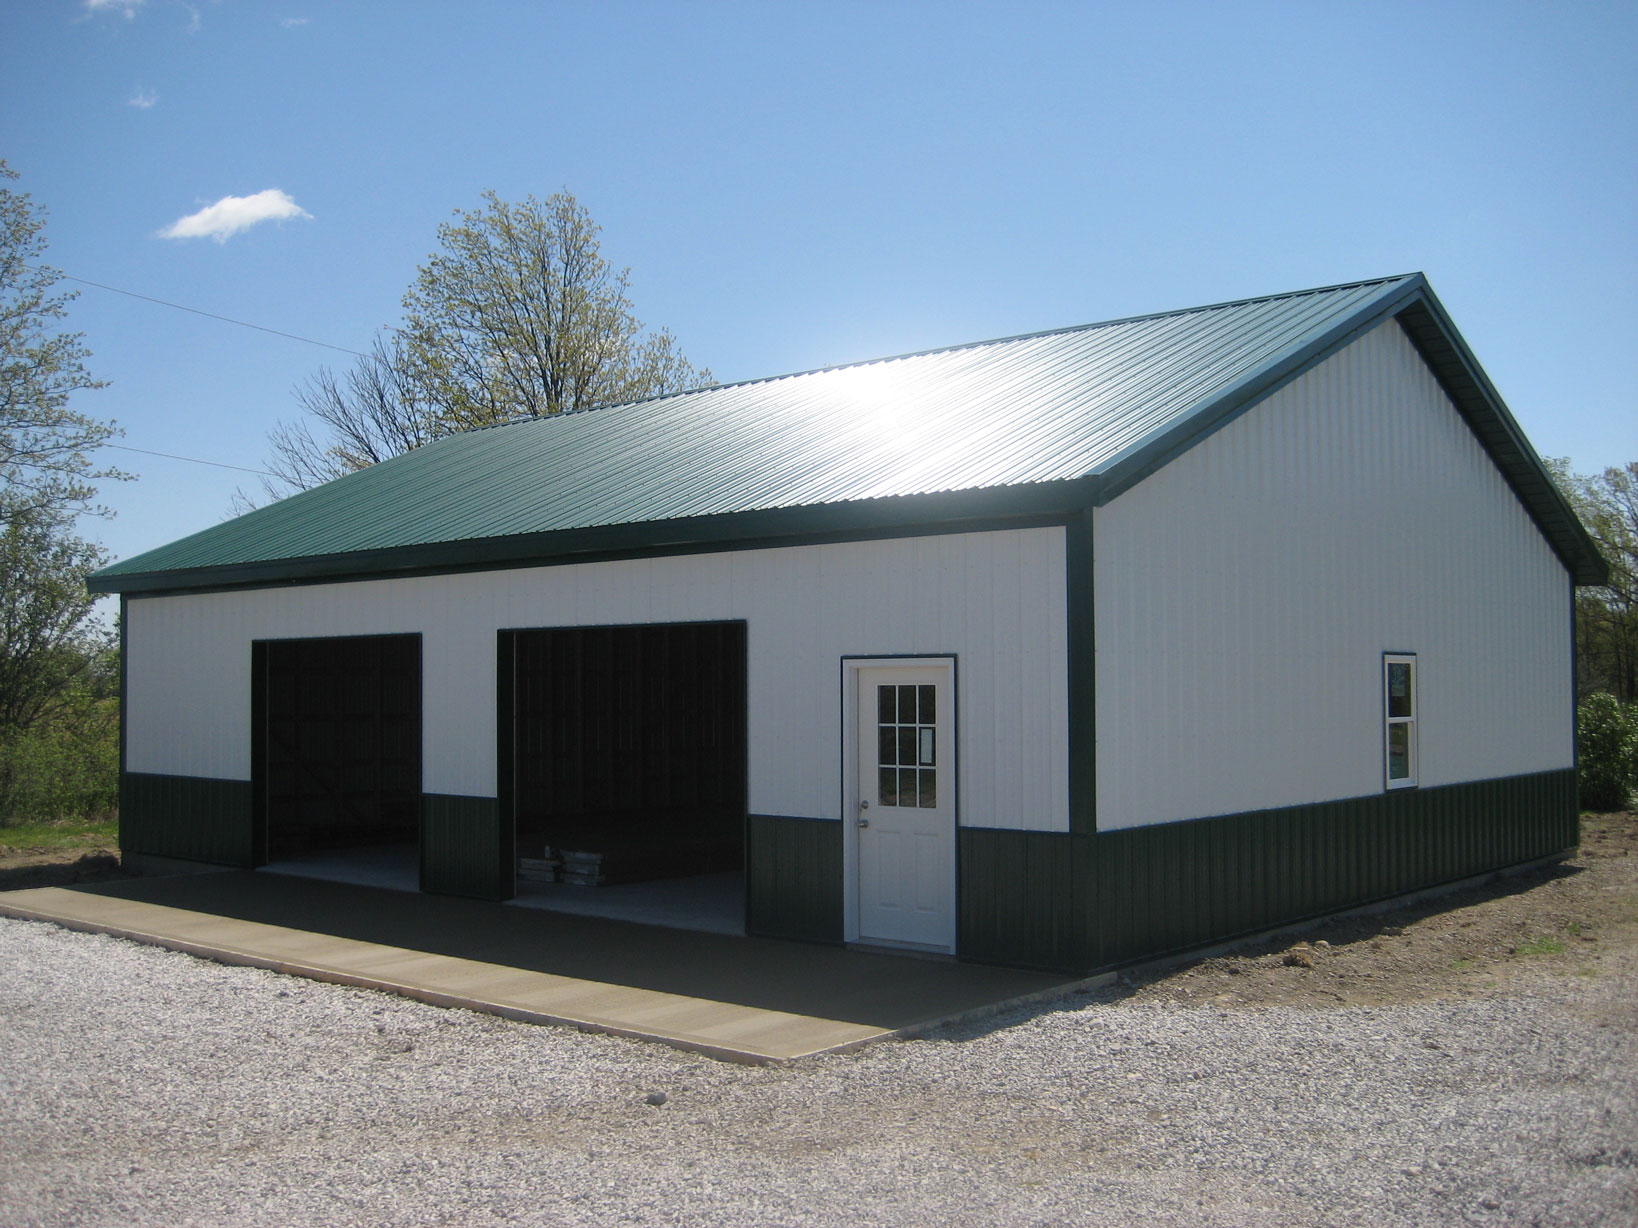 cha pole pt new buildings barn barns garages my project watch updates garage